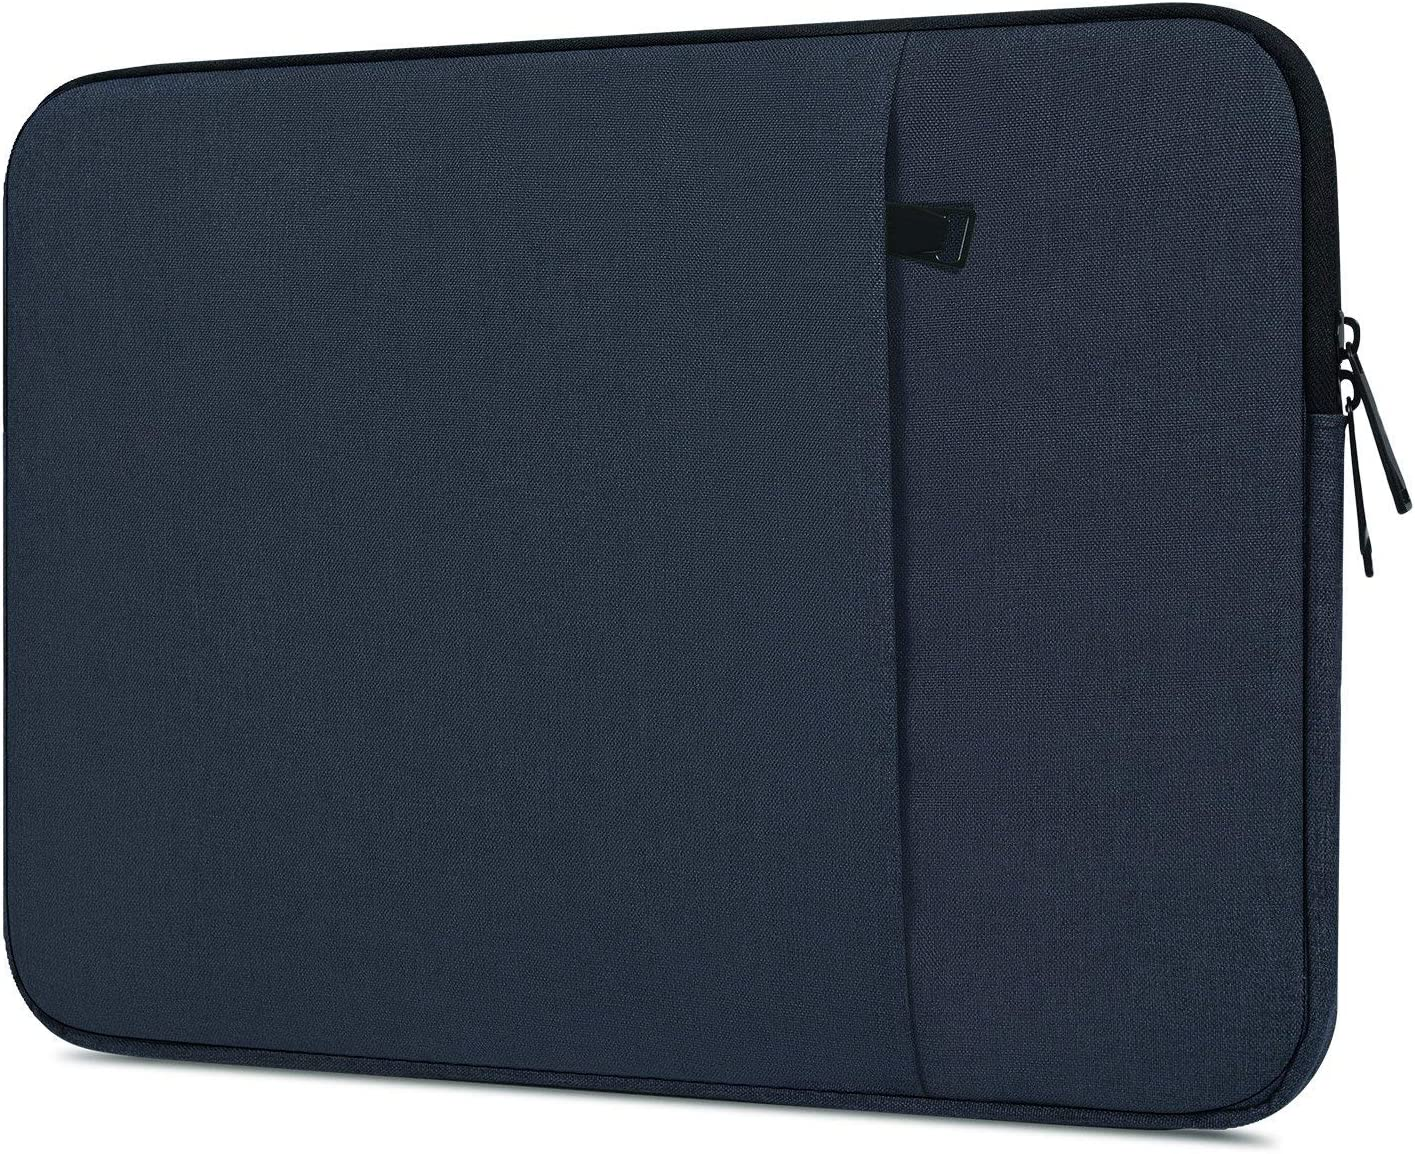 15.6 Waterpoof Laptop Case Sleeve for Acer Chromebook 15/Aspire E 15 E5-575, Acer Aspire 5 Slim Laptop, Acer Nitro 15, Asus Samsung Toshiba Lenovo HP Chromebook Protective Notebook Bag, Navy Blue